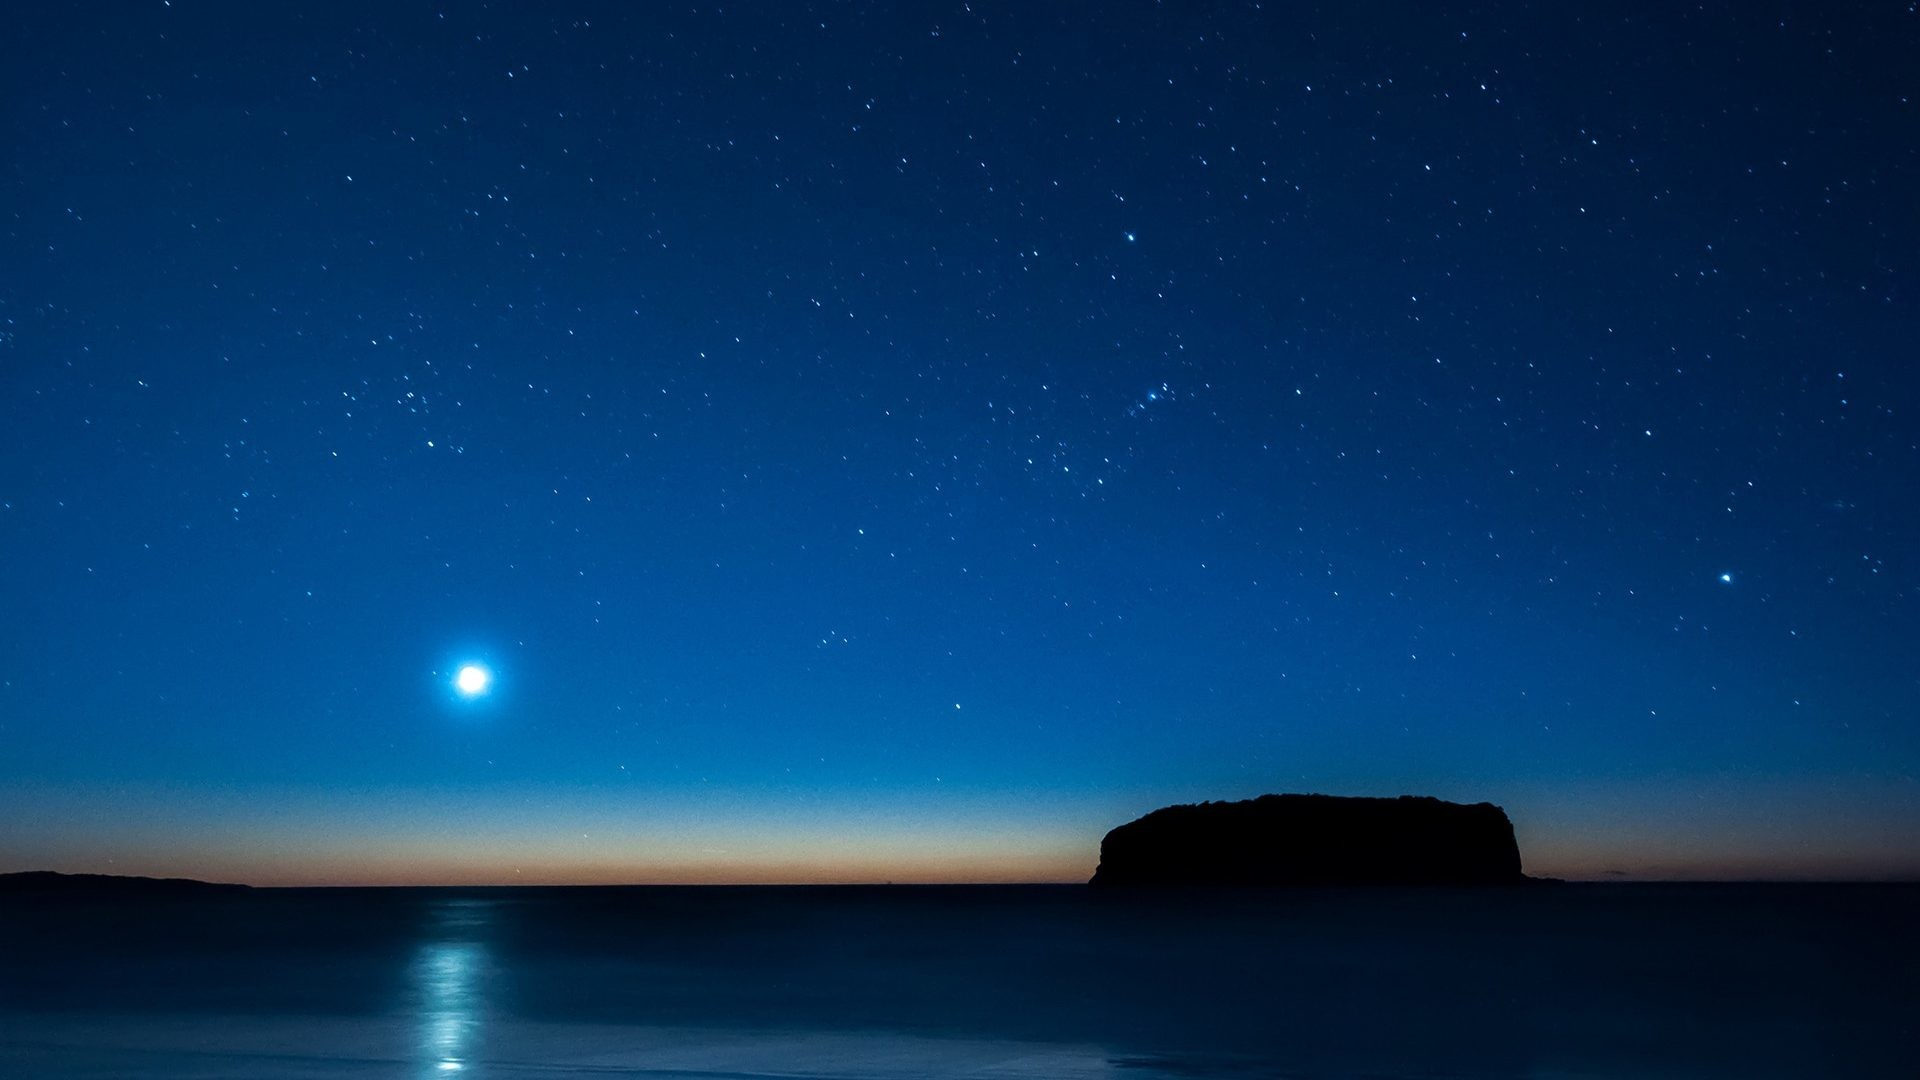 Moonlight Blue Ocean Stars Night Free Animated Nature Wallpapers For Mobile  – 1920×1200